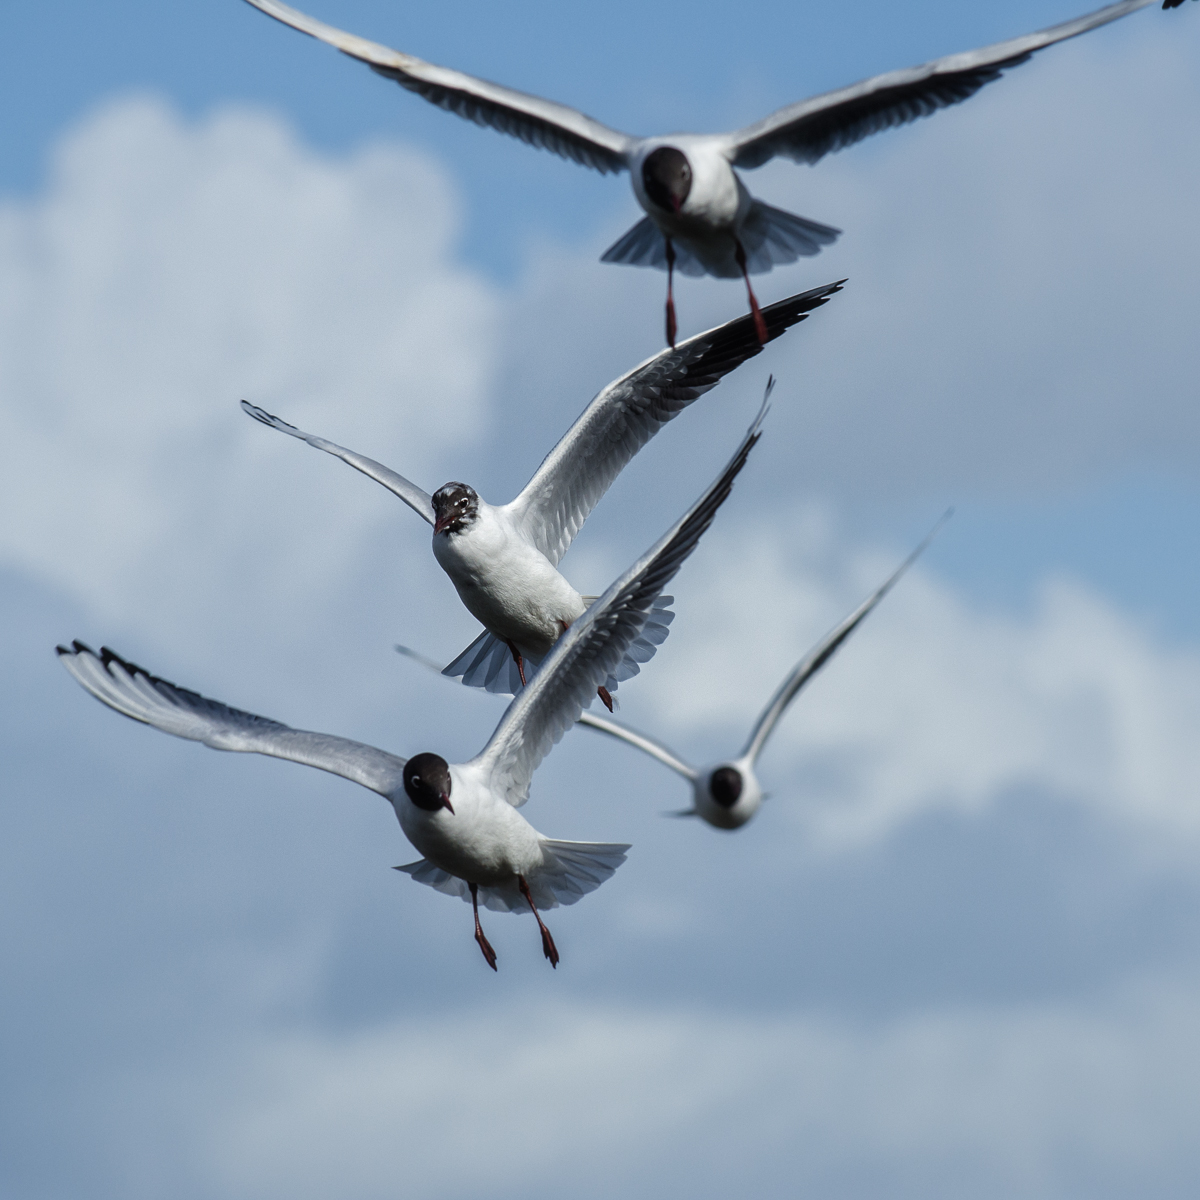 Click on the image to see more birds in action